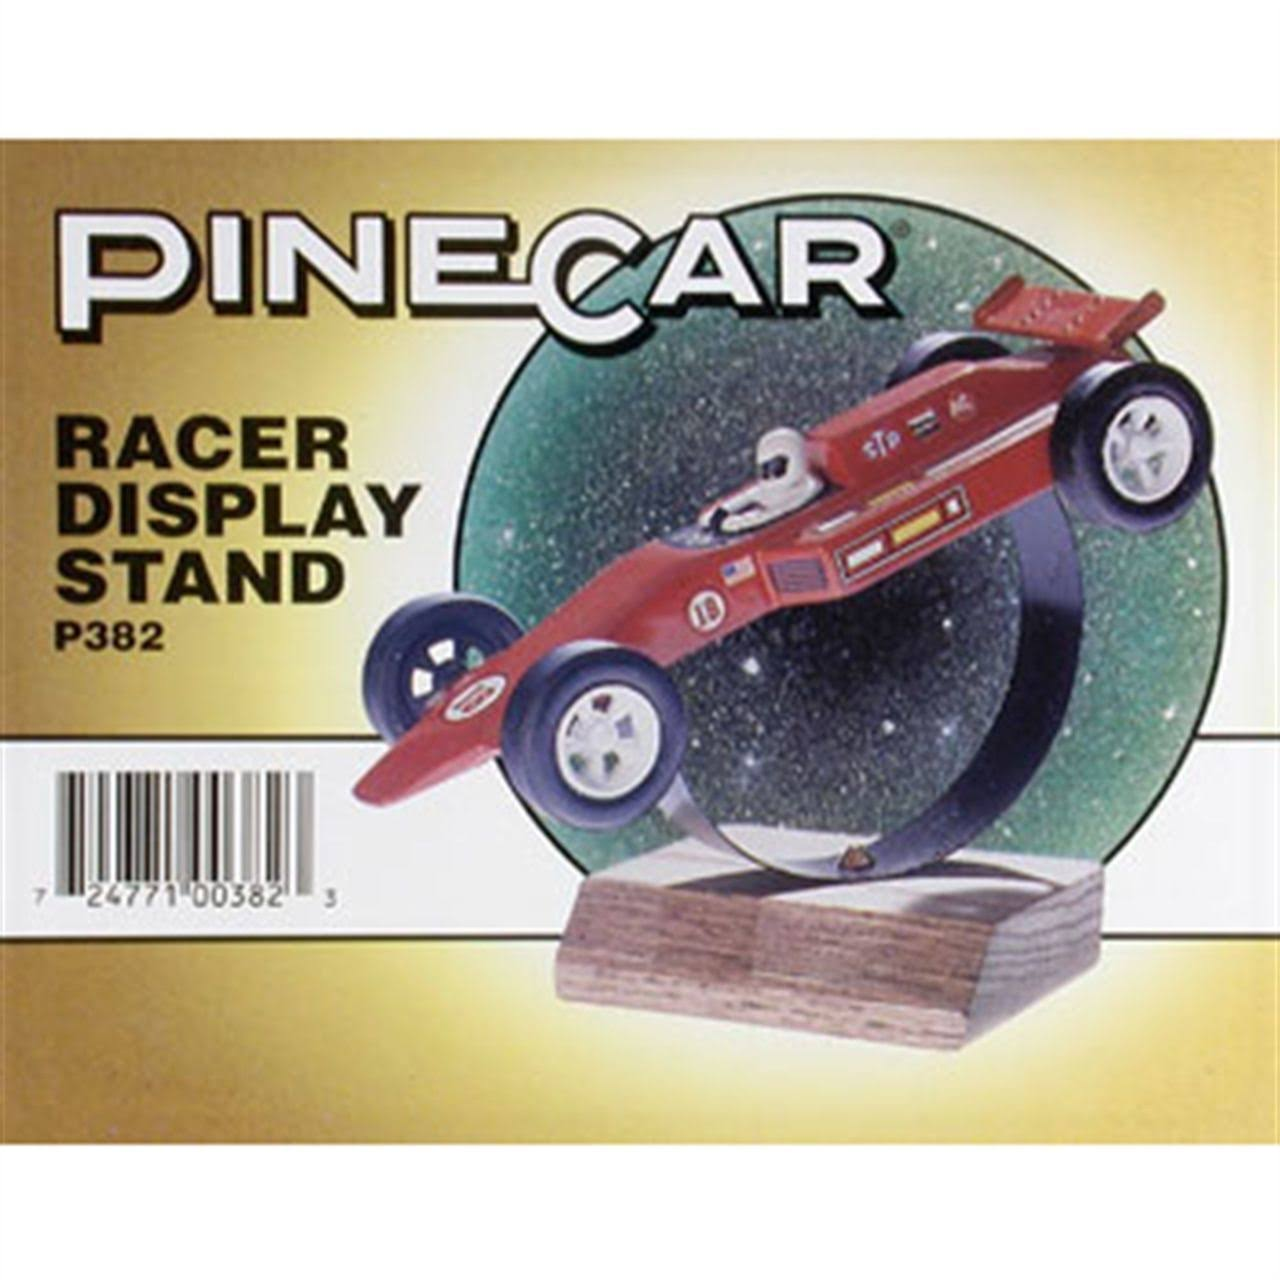 Pinecar Derby Racer Display Stand